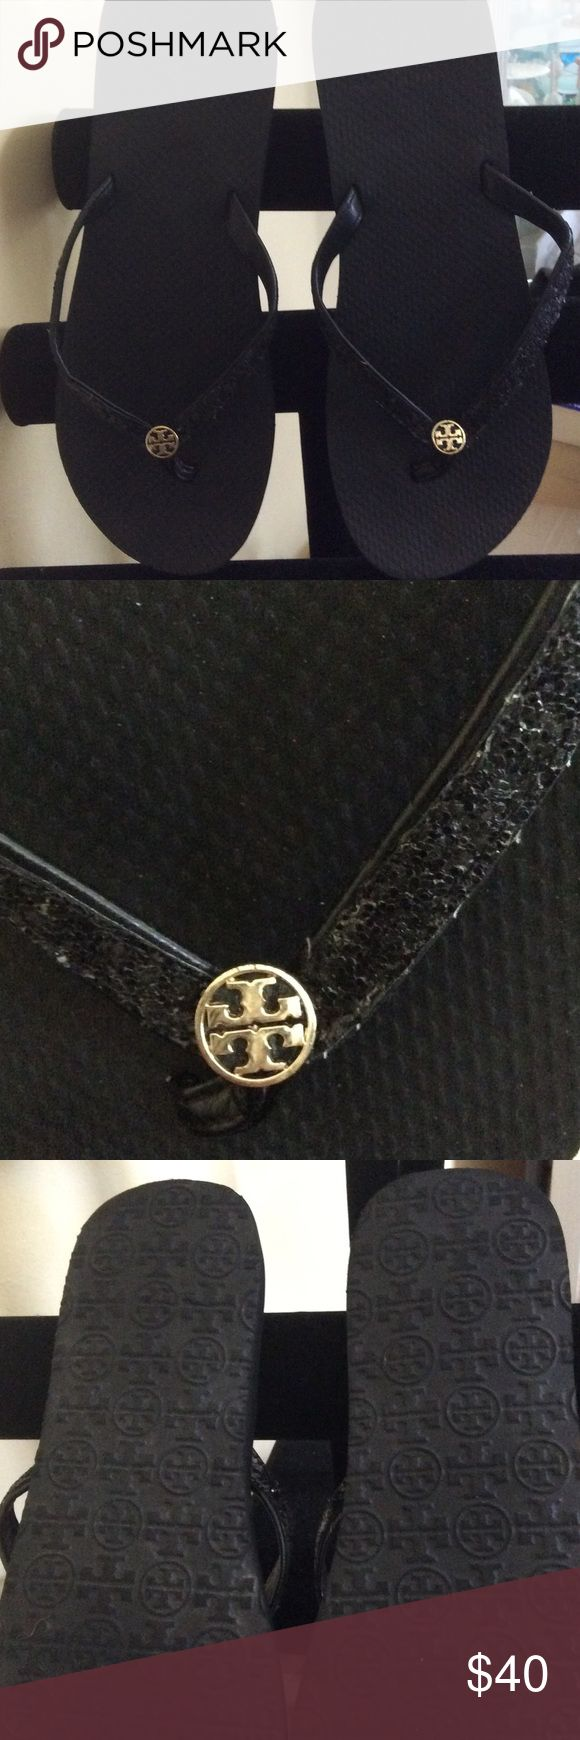 Tory Burch sparkly black flip-flops Tory Burch sparkle!  Black sparkly flip-flops with gold Tory logo. Beautiful condition. Very comfy! Tory Burch Shoes